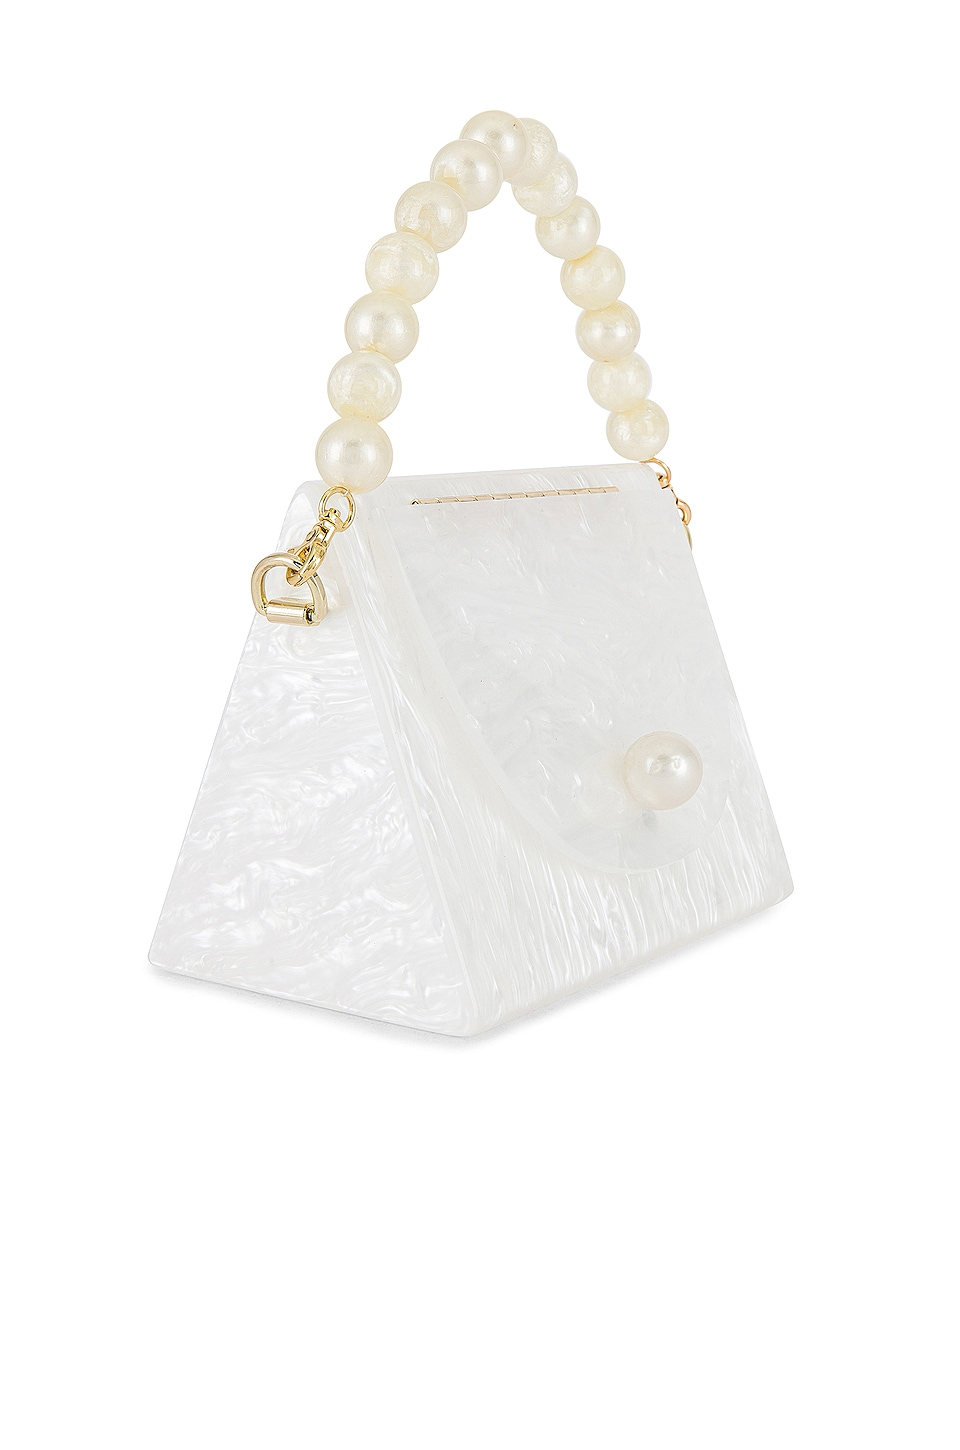 Lele Sadoughi Tent Bag in Mother Of Pearl